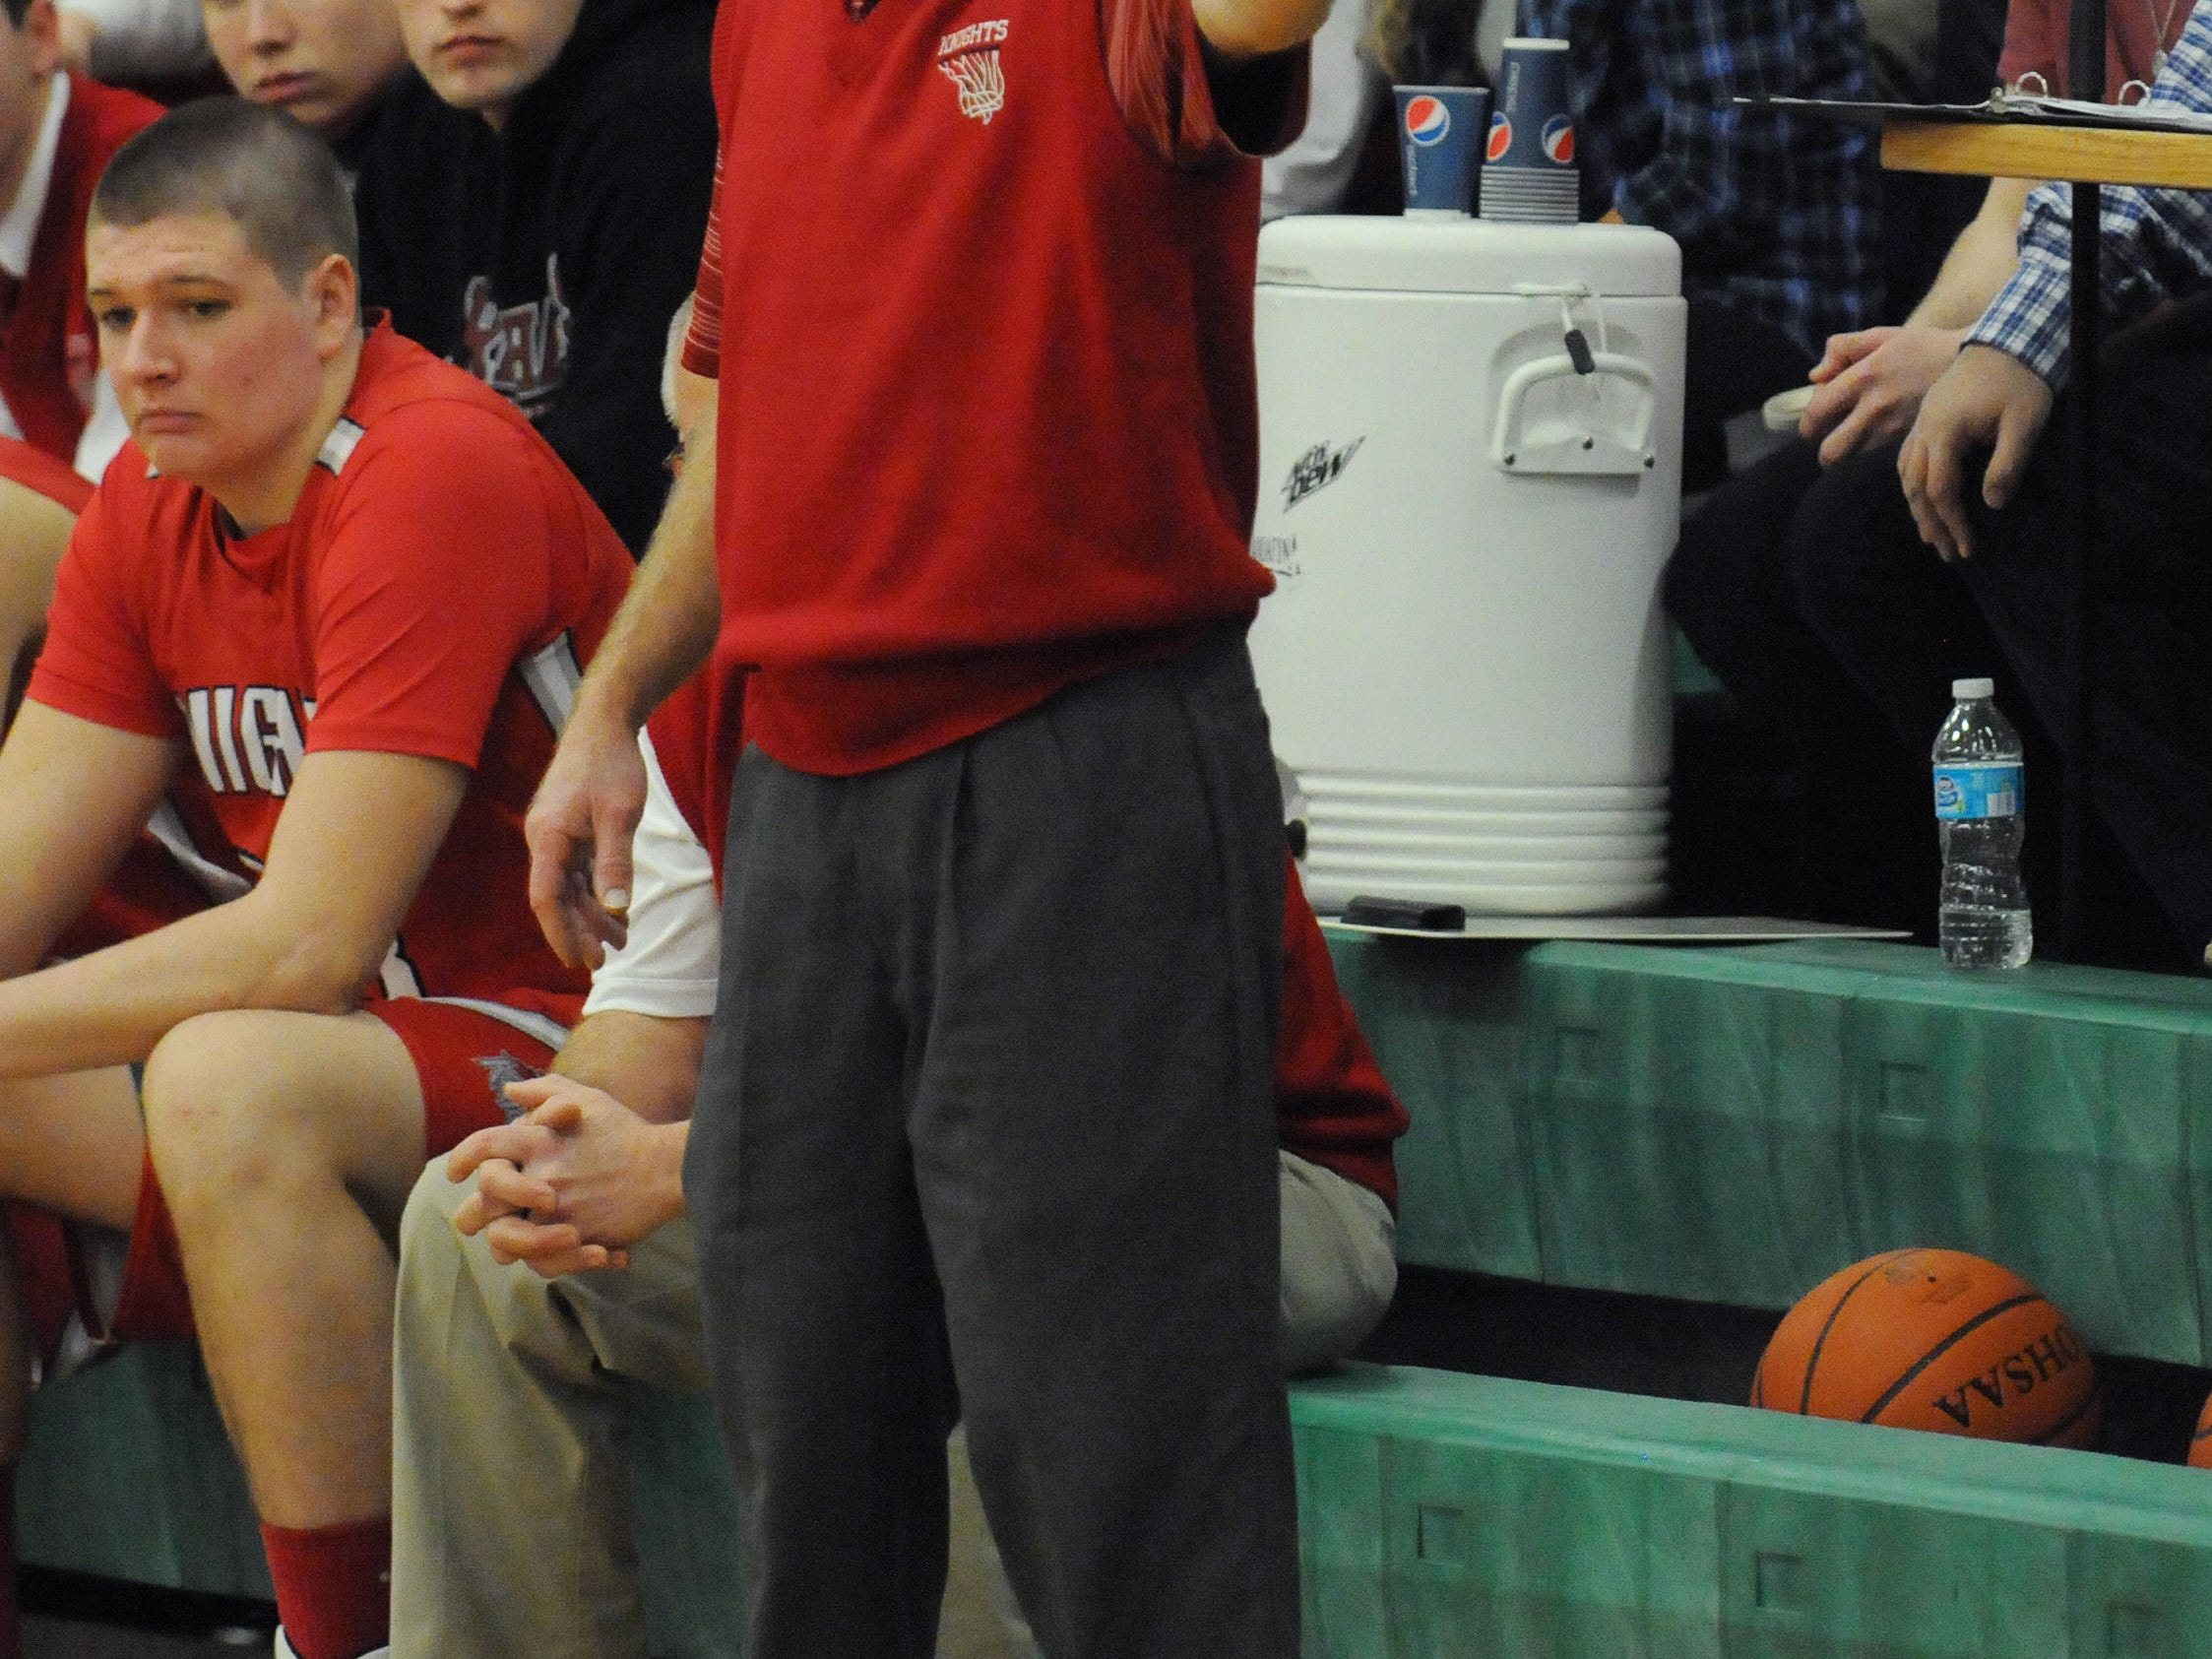 Roger Hooper, Fairfield Christian Academy boys basketball coach, works the sidelines during the Knights' game against Fisher Catholic earlier this season. Hooper coached for 30 years at New Lexington before spending the past 13 with Fairfield Christian.